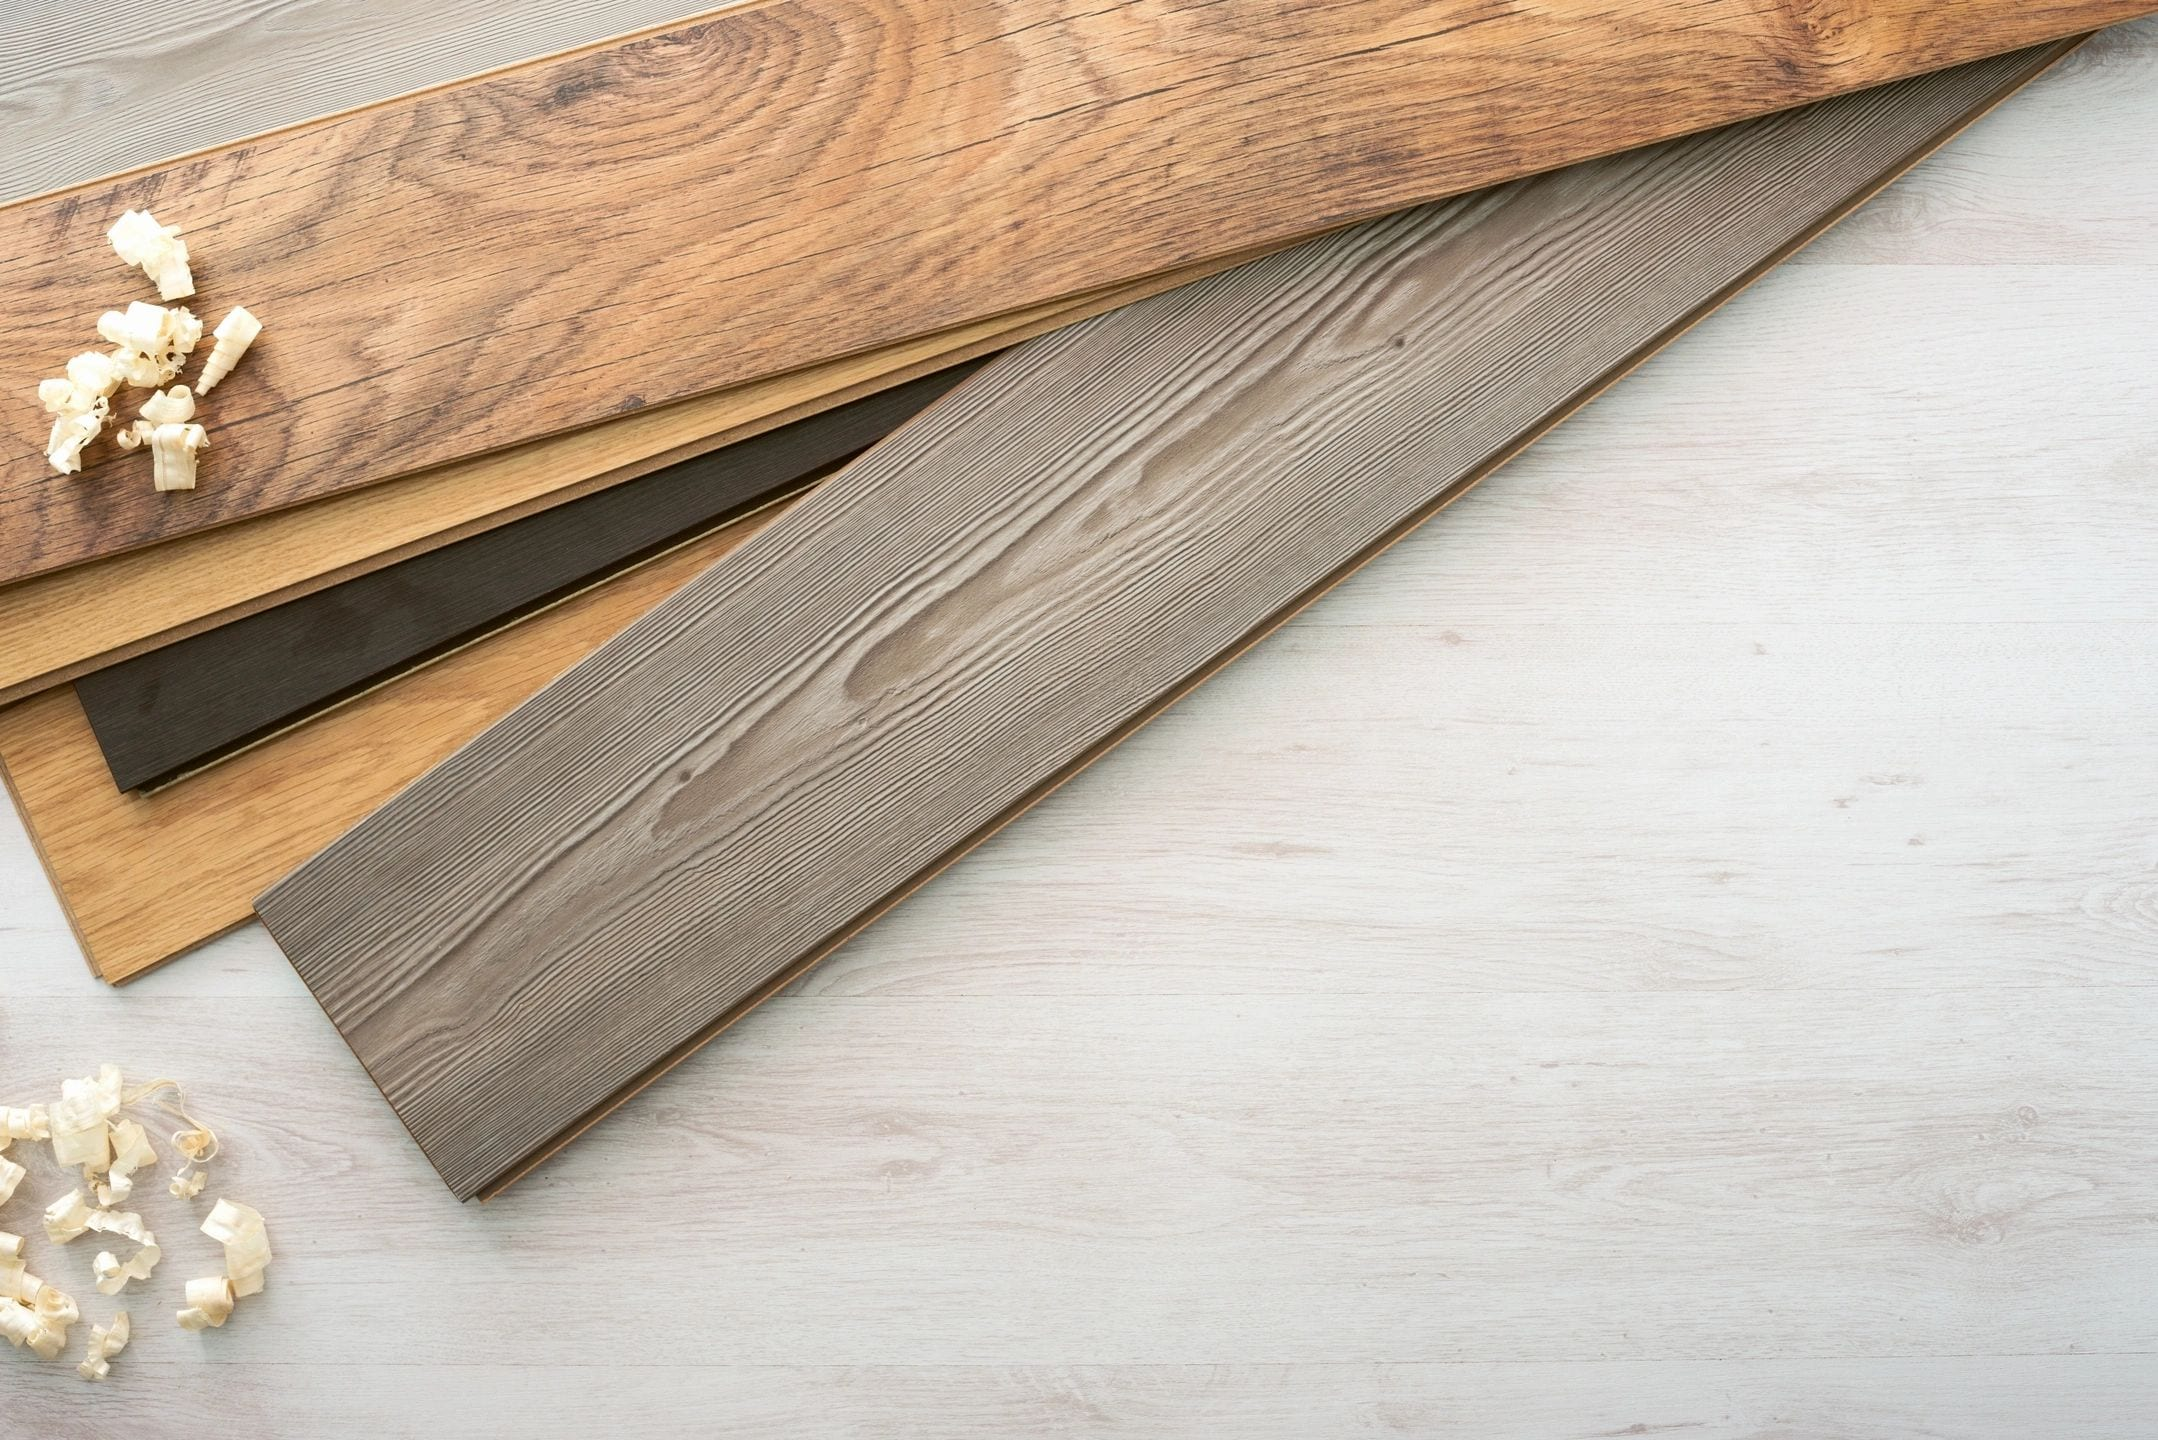 Benefits of Reclaimed Wood Furniture